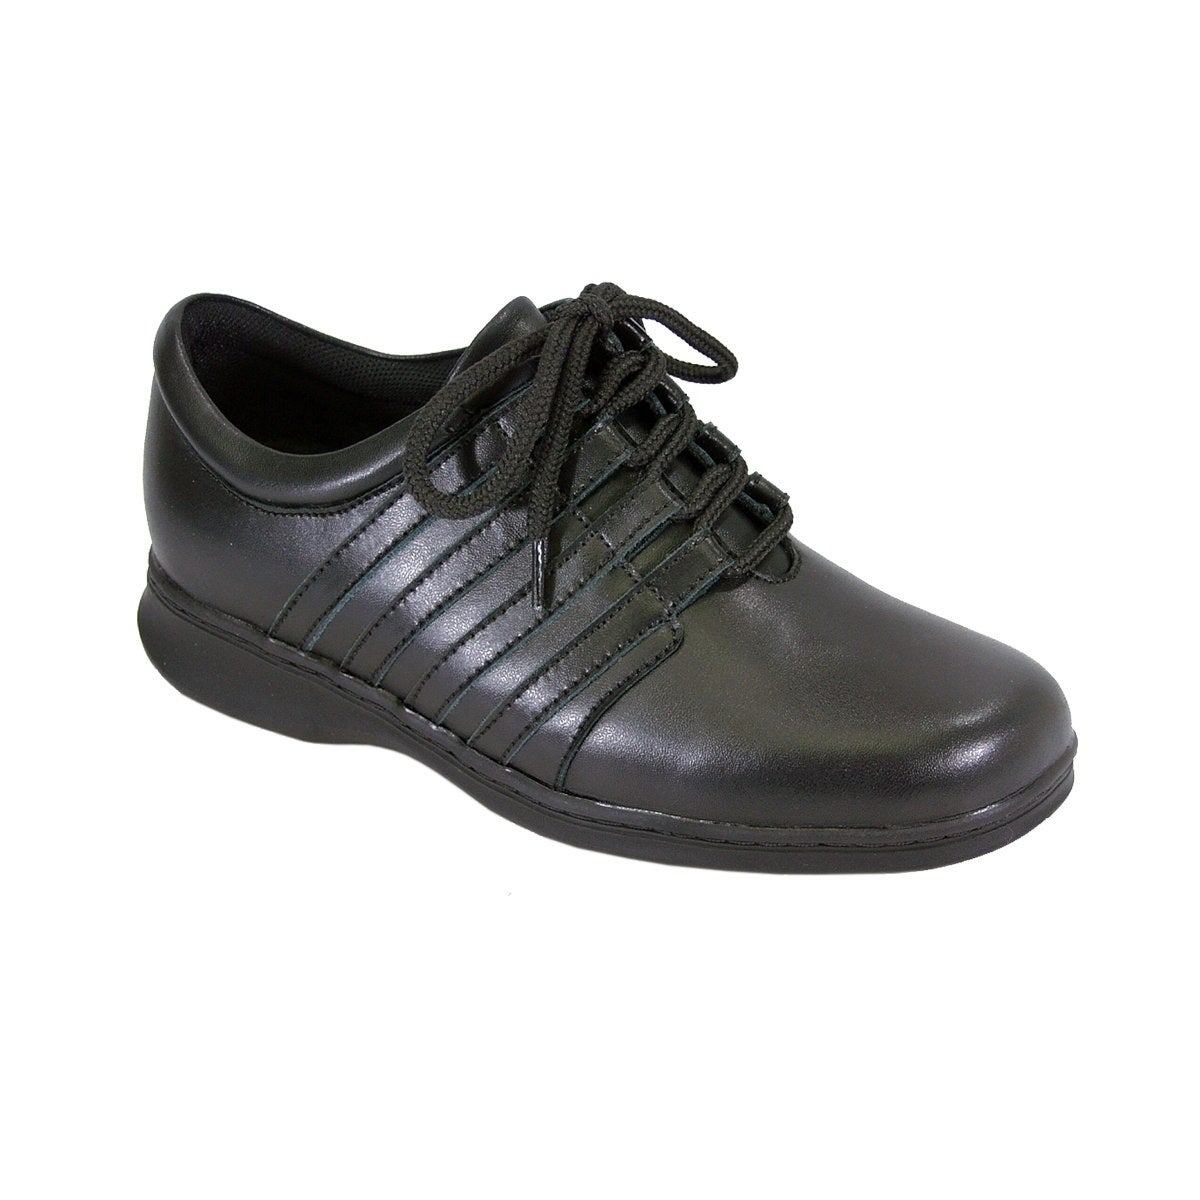 5b8109774f20 24 HOUR COMFORT Lara Women Wide Width Side Stitched Oxford LaceUp Shoe